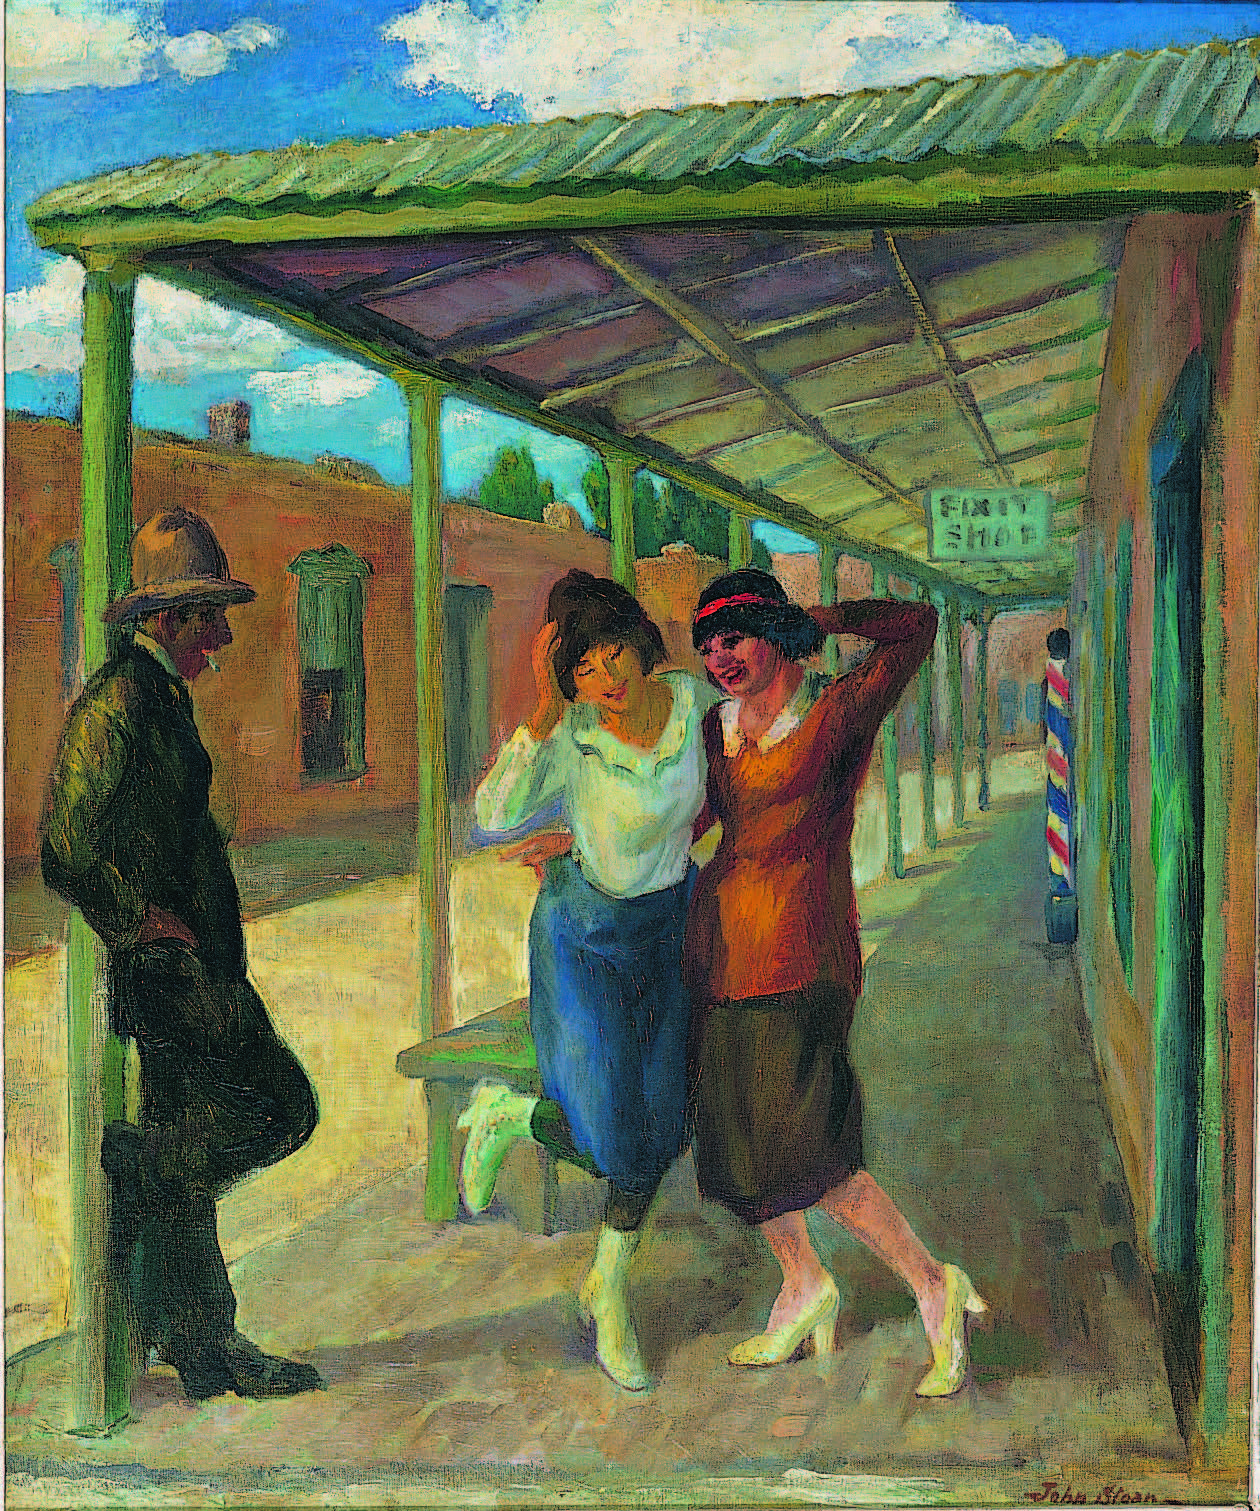 John Sloan, Under the Old Portal (Old Portale, Santa Fe), 1919 (reworked 1945). Oil on canvas, 24 × 20 in. Collection of the New Mexico Museum of Art. Gift of Julius Gans, 1946 (22.23P). © 2016 Delaware Art Museum/Artists Rights Society (ARS) New York. Photograph by Blair Clark.